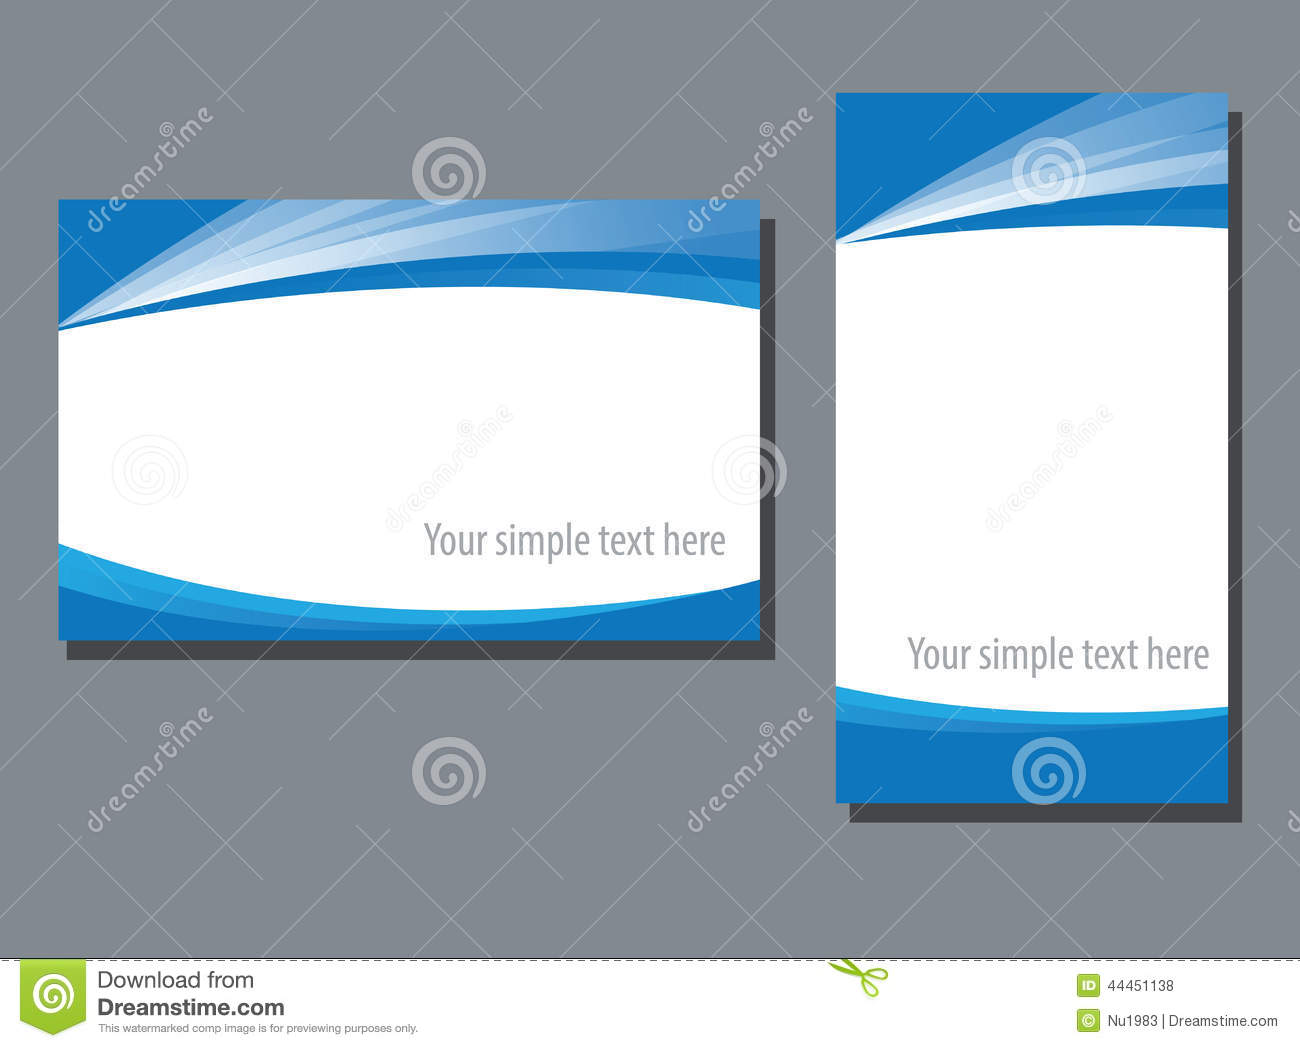 Business Name Card Template Stock Vector - Image: 44451138